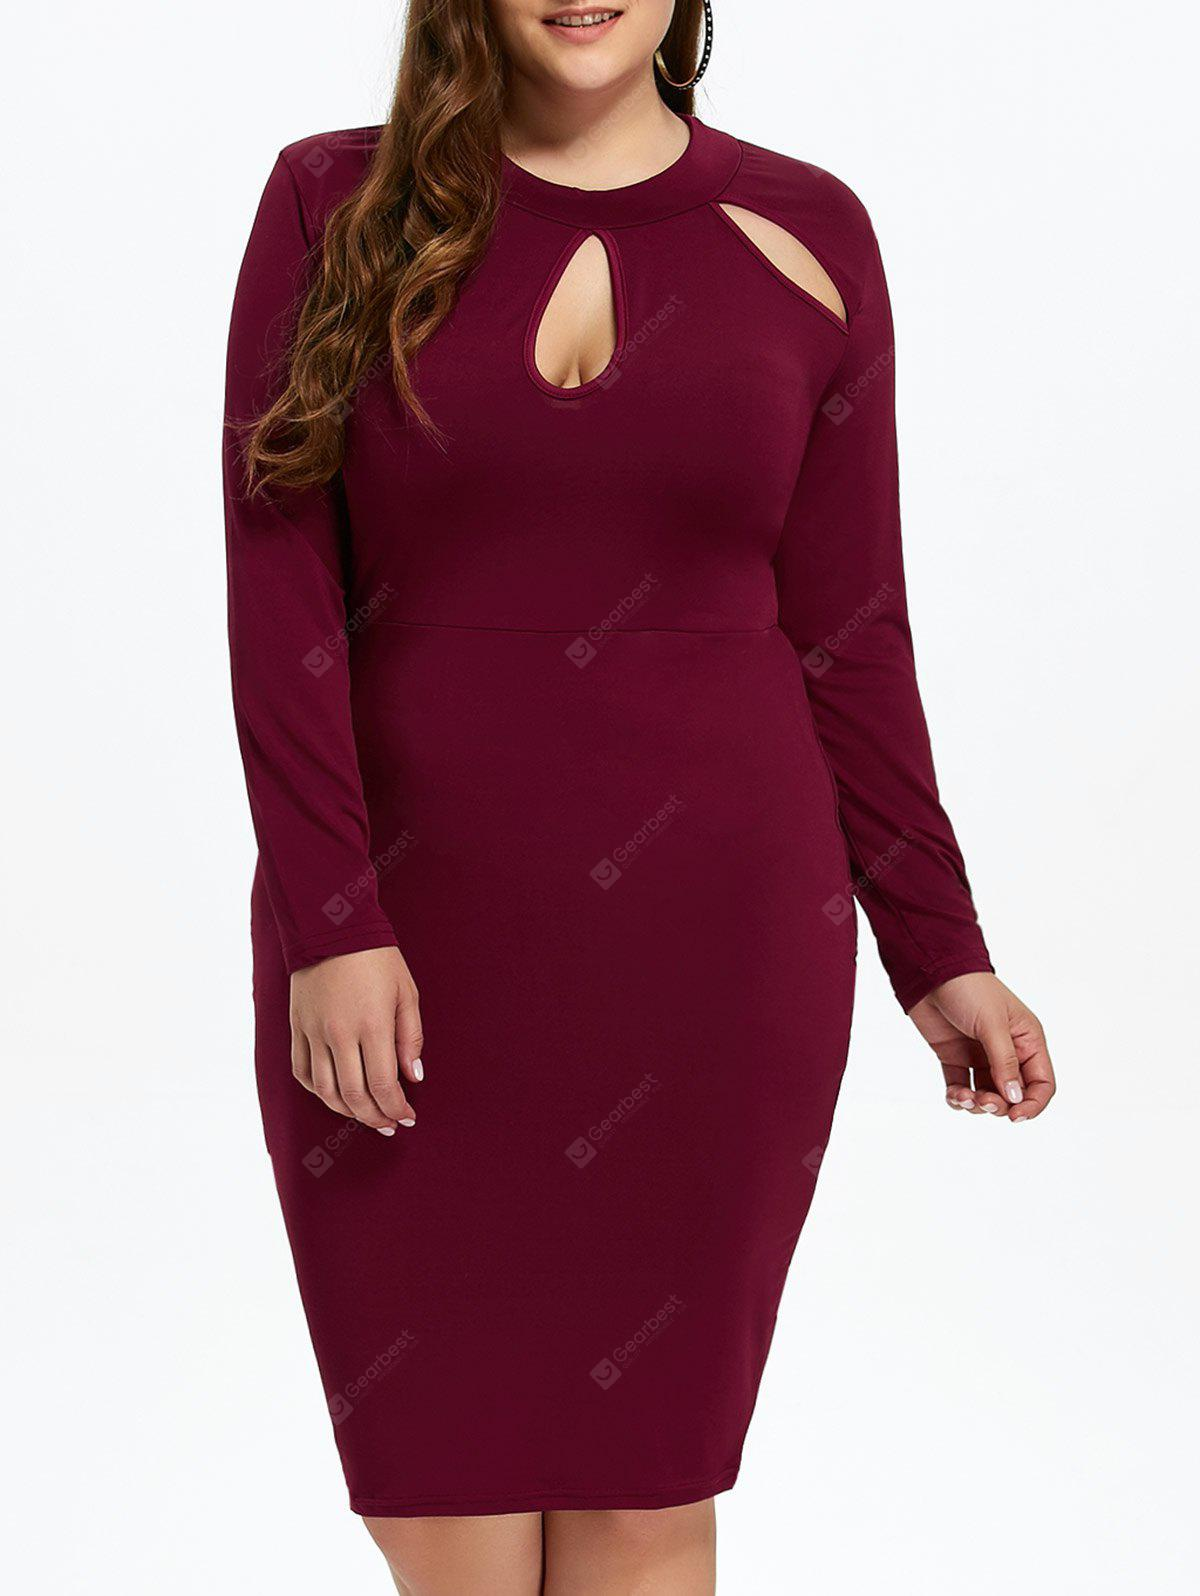 WINE RED 3XL Plus Size Sheath Dress with Long Sleeves